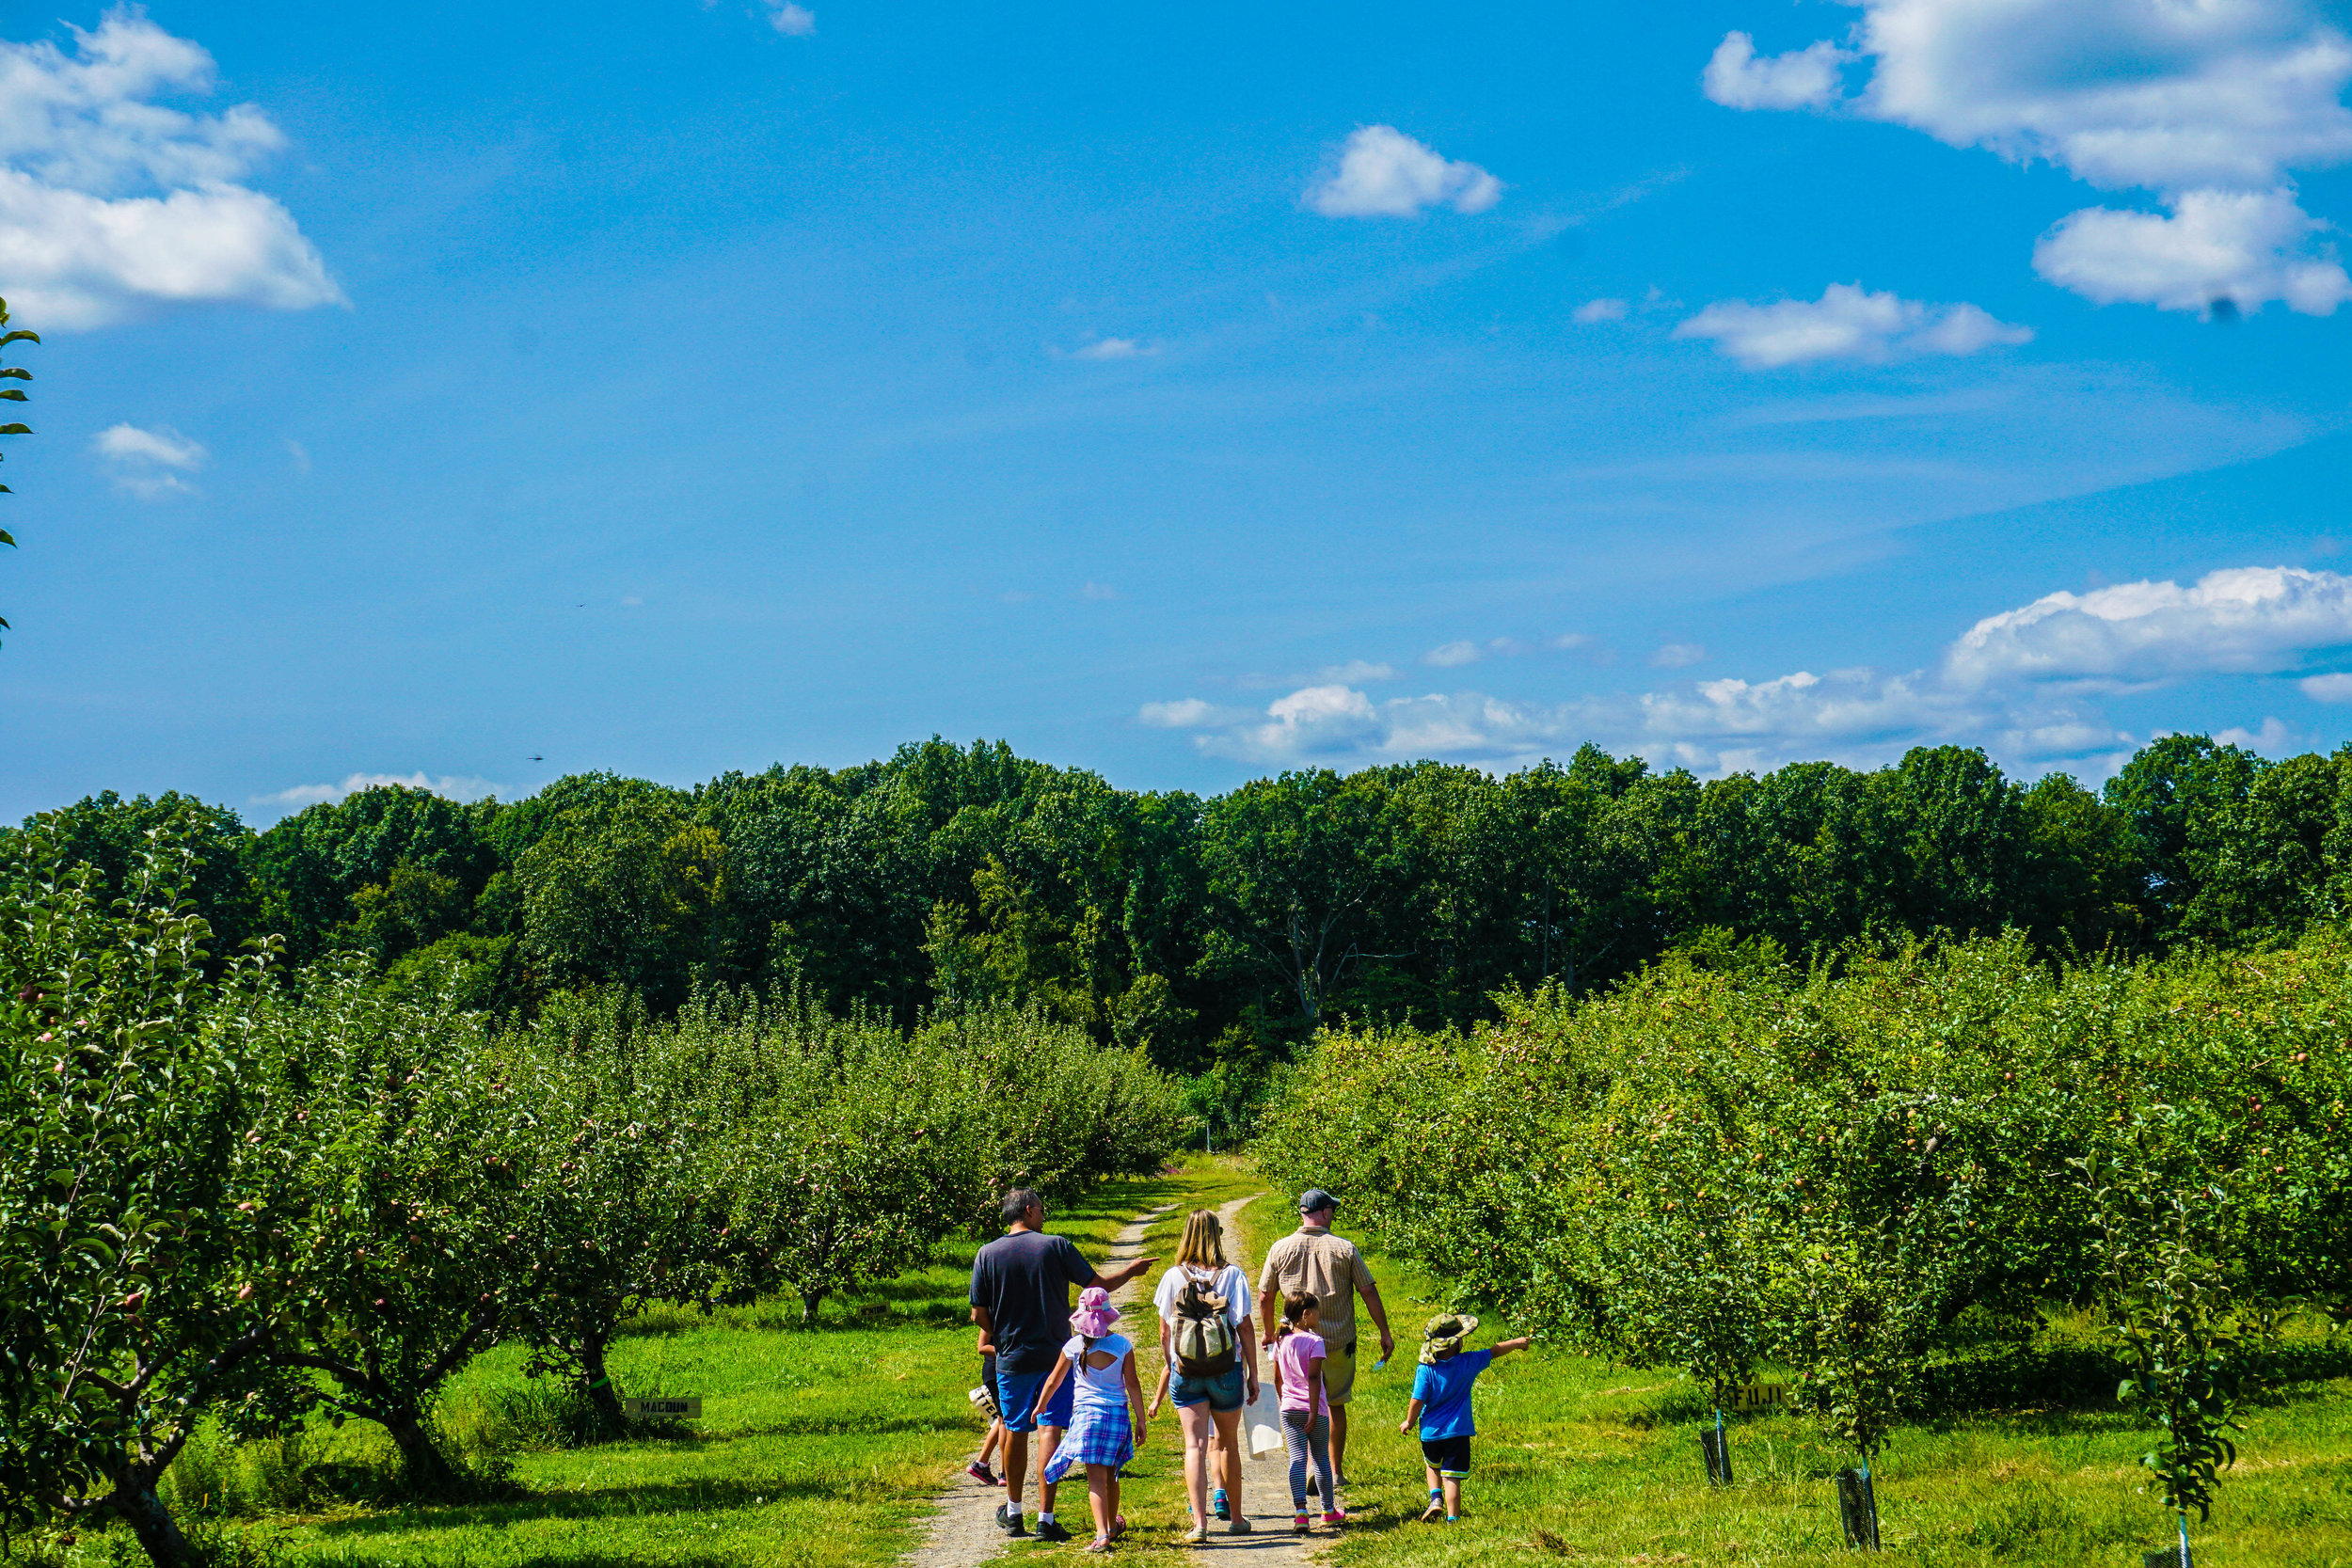 2017_08_28_BCH_New_Paltz_Orchard_021.jpg